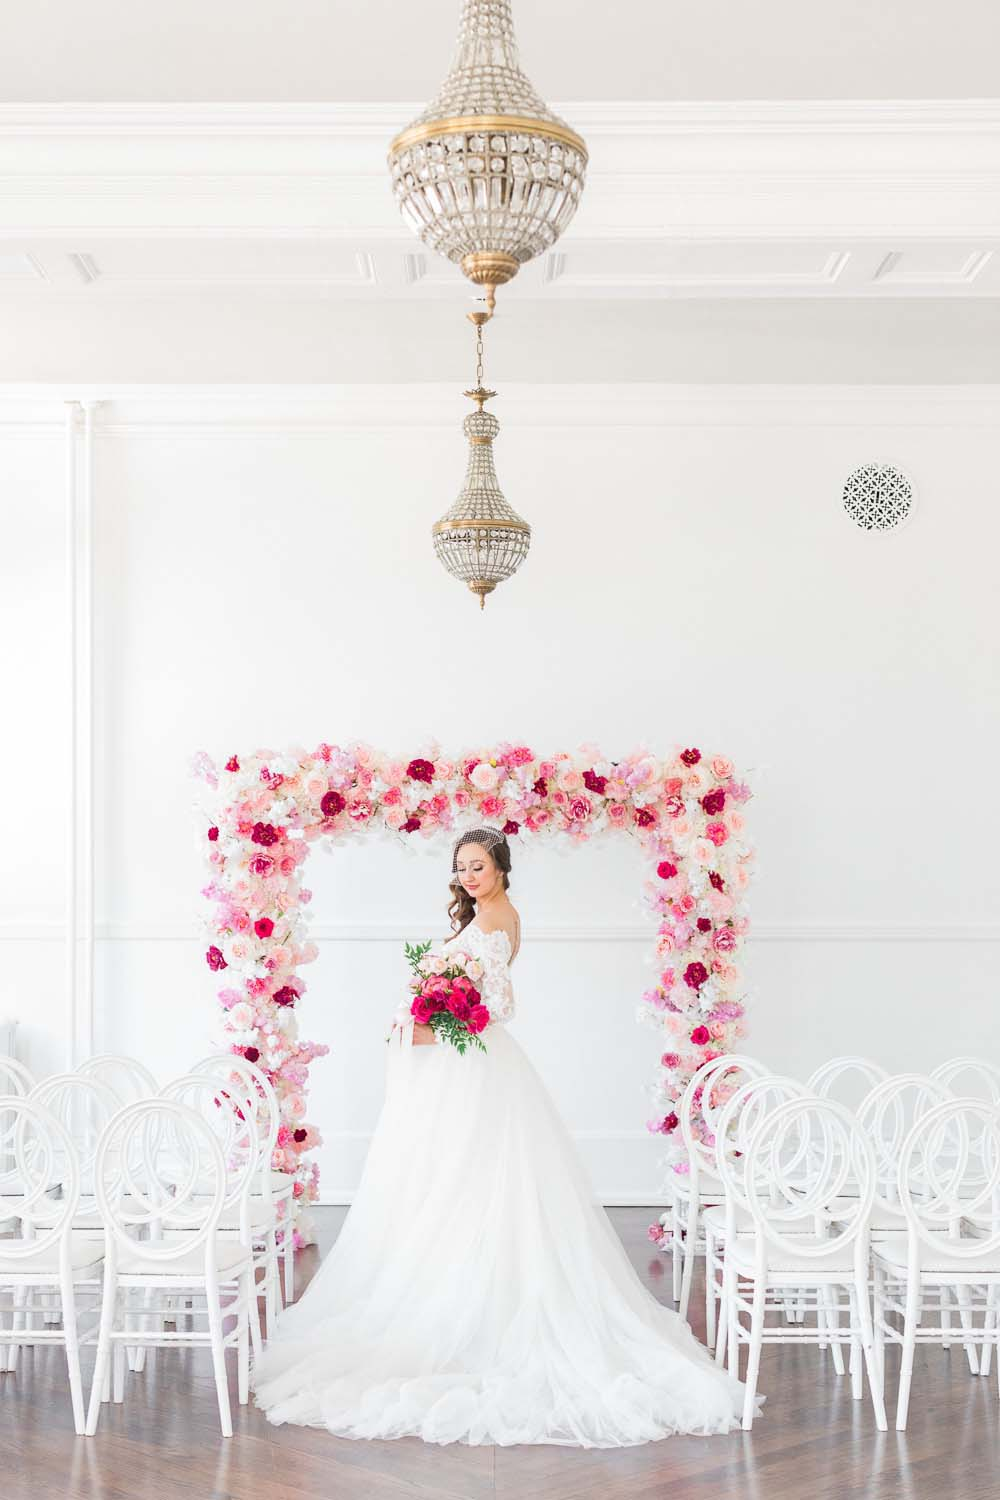 Every Single Detail You Need For A Valentine's Day Inspired Wedding - Ceremony Backdrop